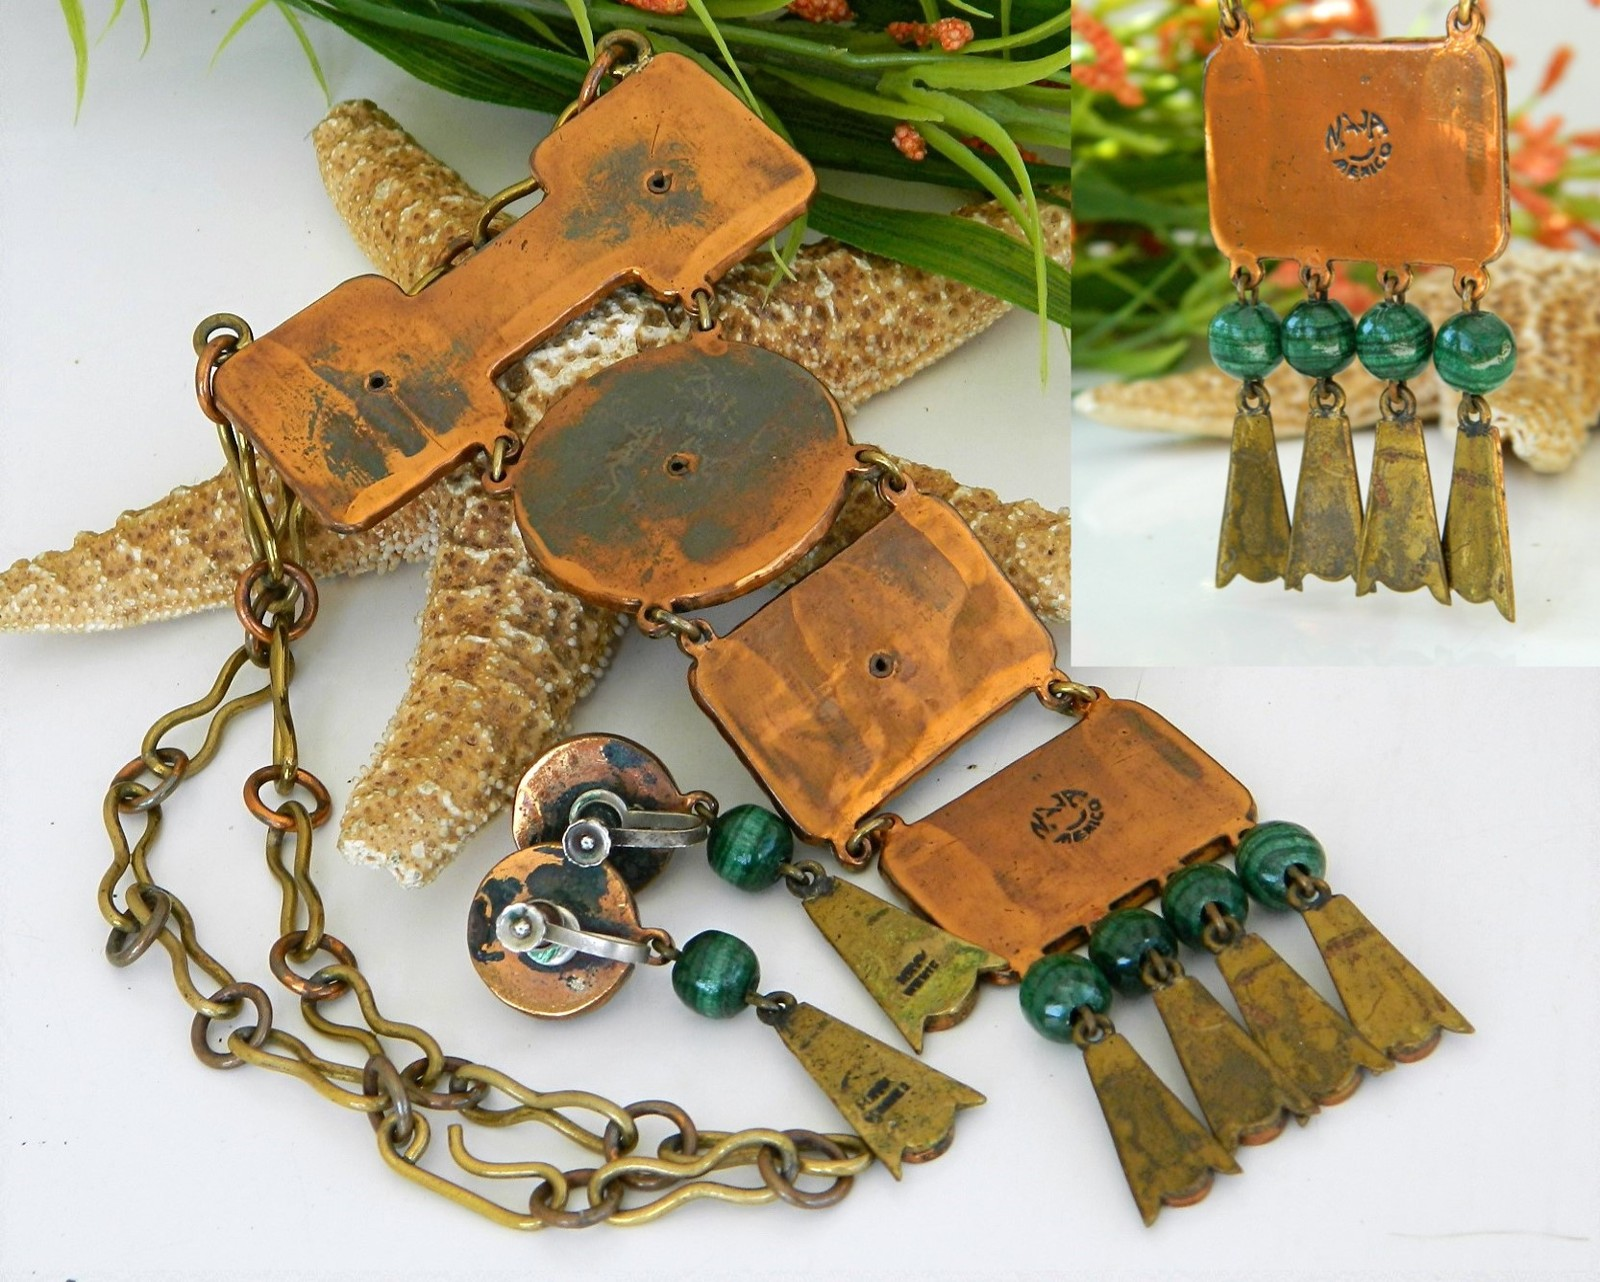 Vintage Casa Maya Mexico Necklace Earrings Set Mixed Metals Signed